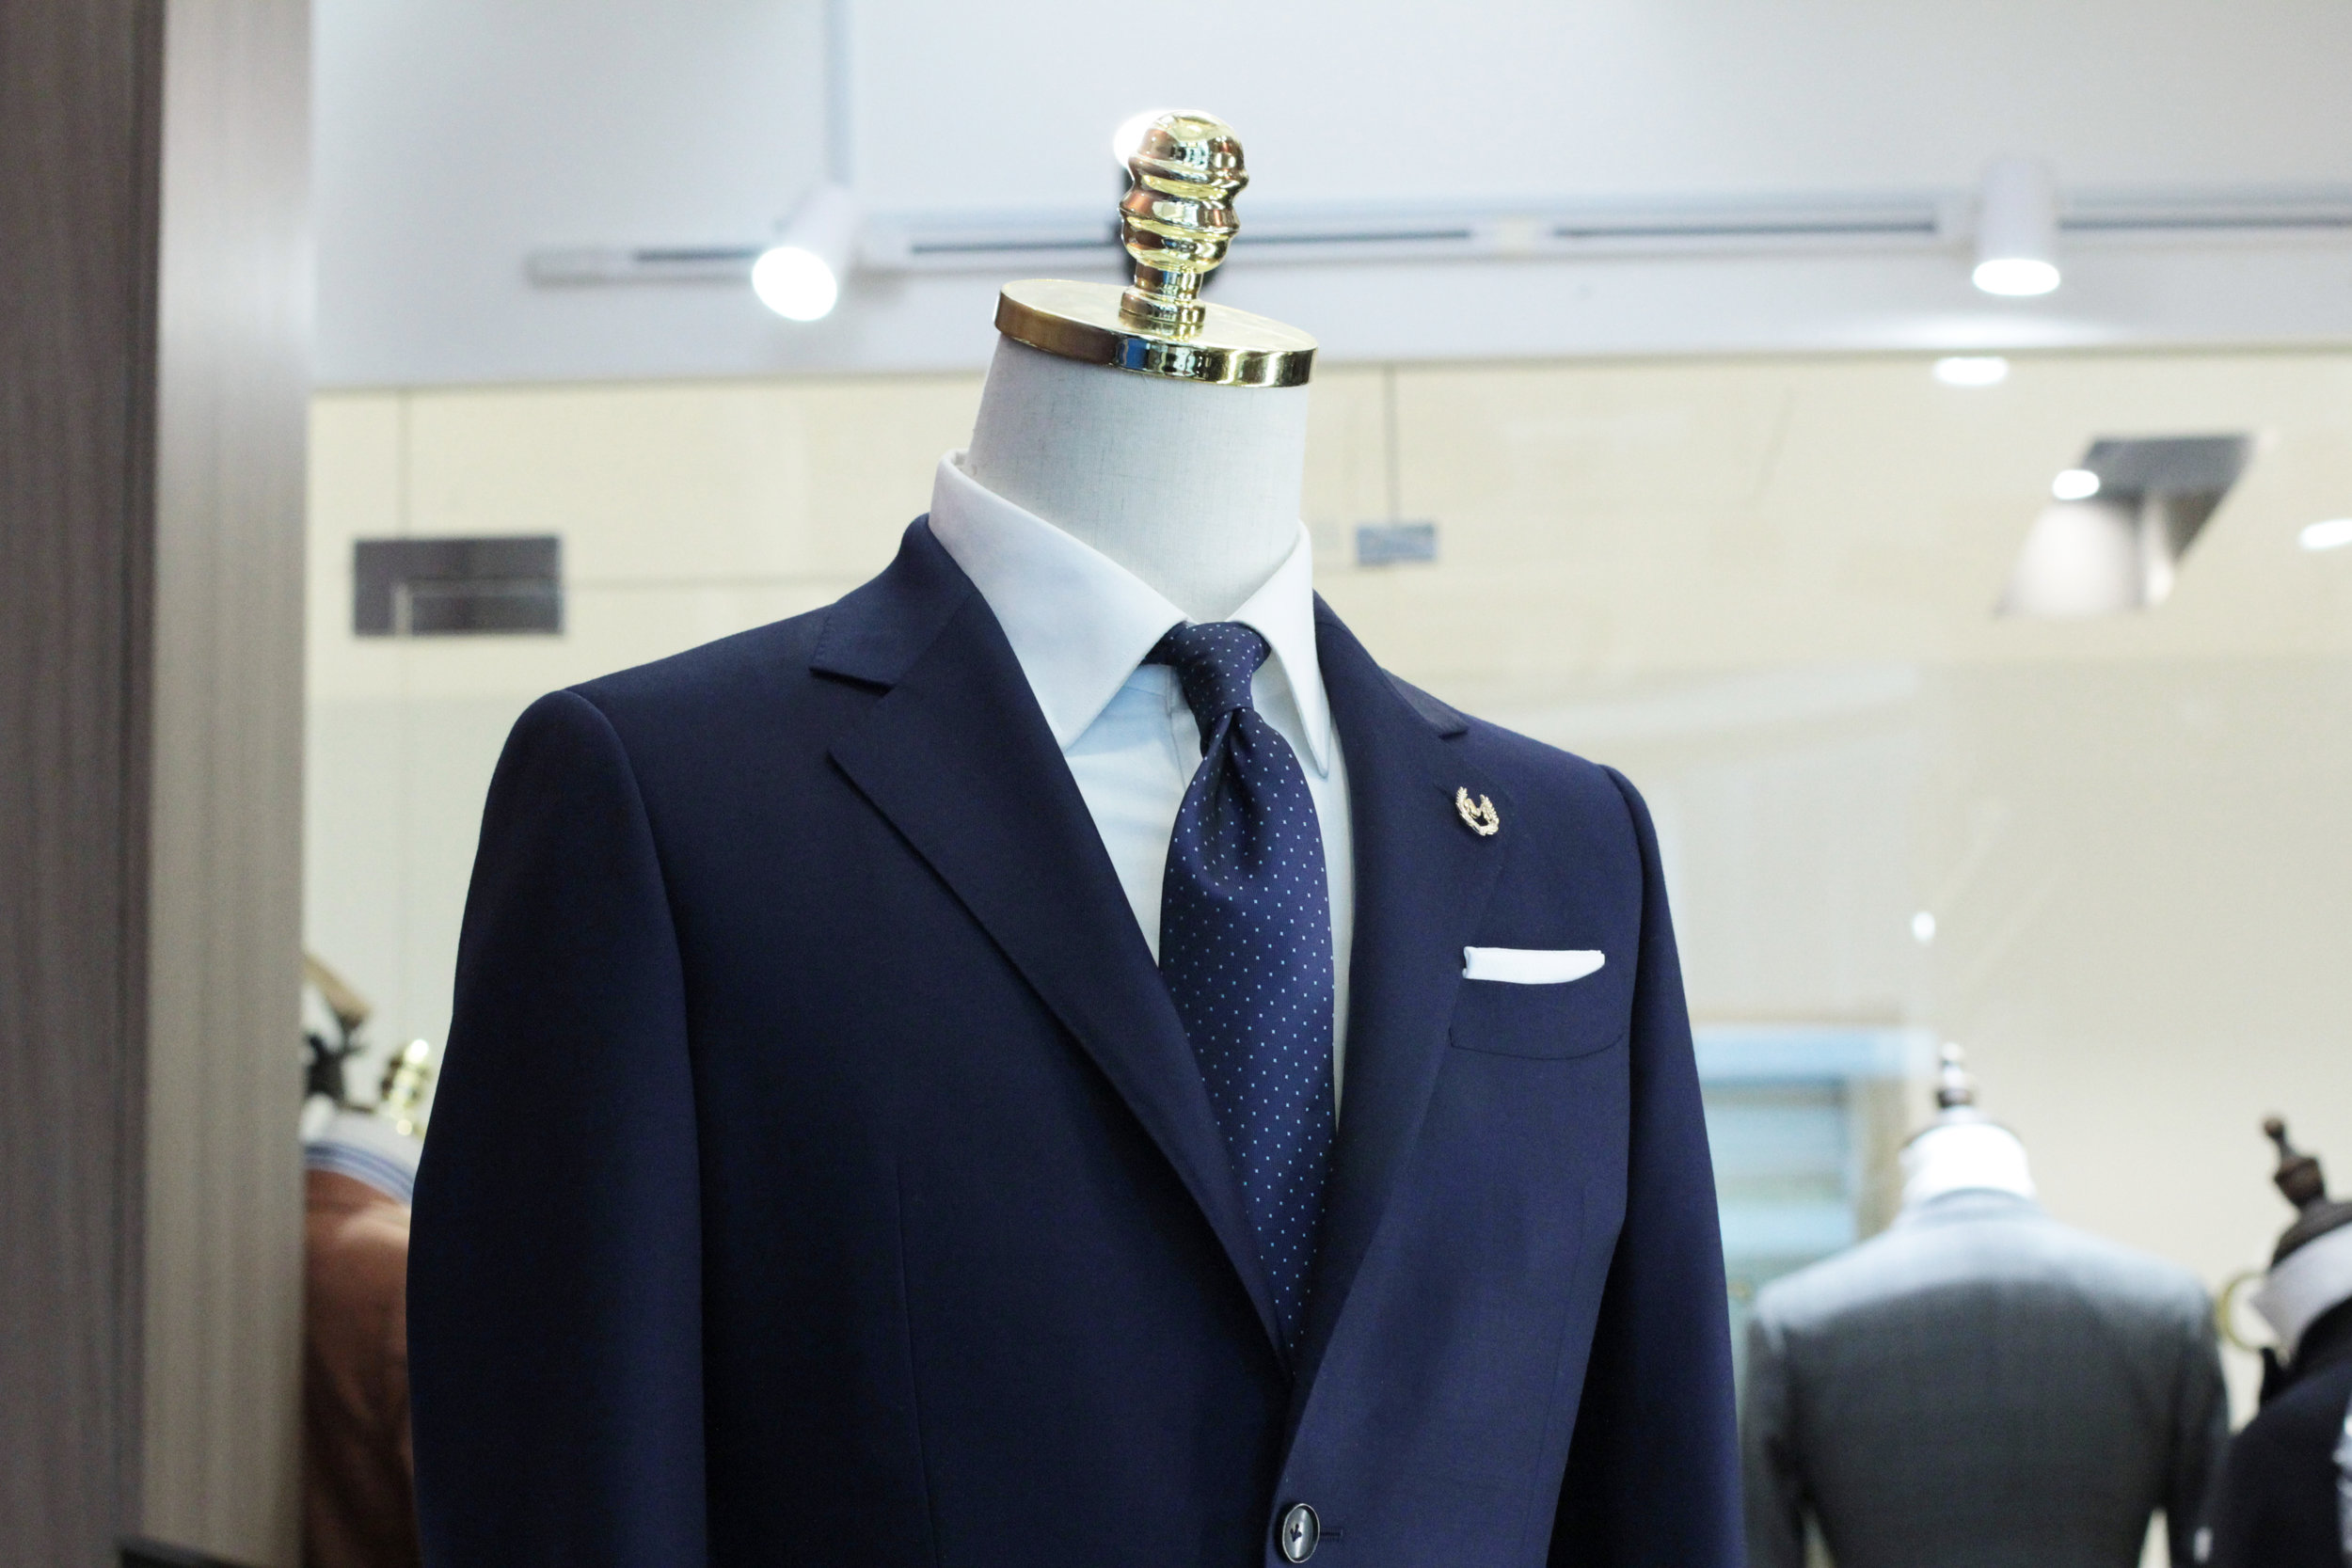 Front view Made Suits Conan Notched Lapel Suit Navy Blue FILARTE Made to Measure Suit.JPG